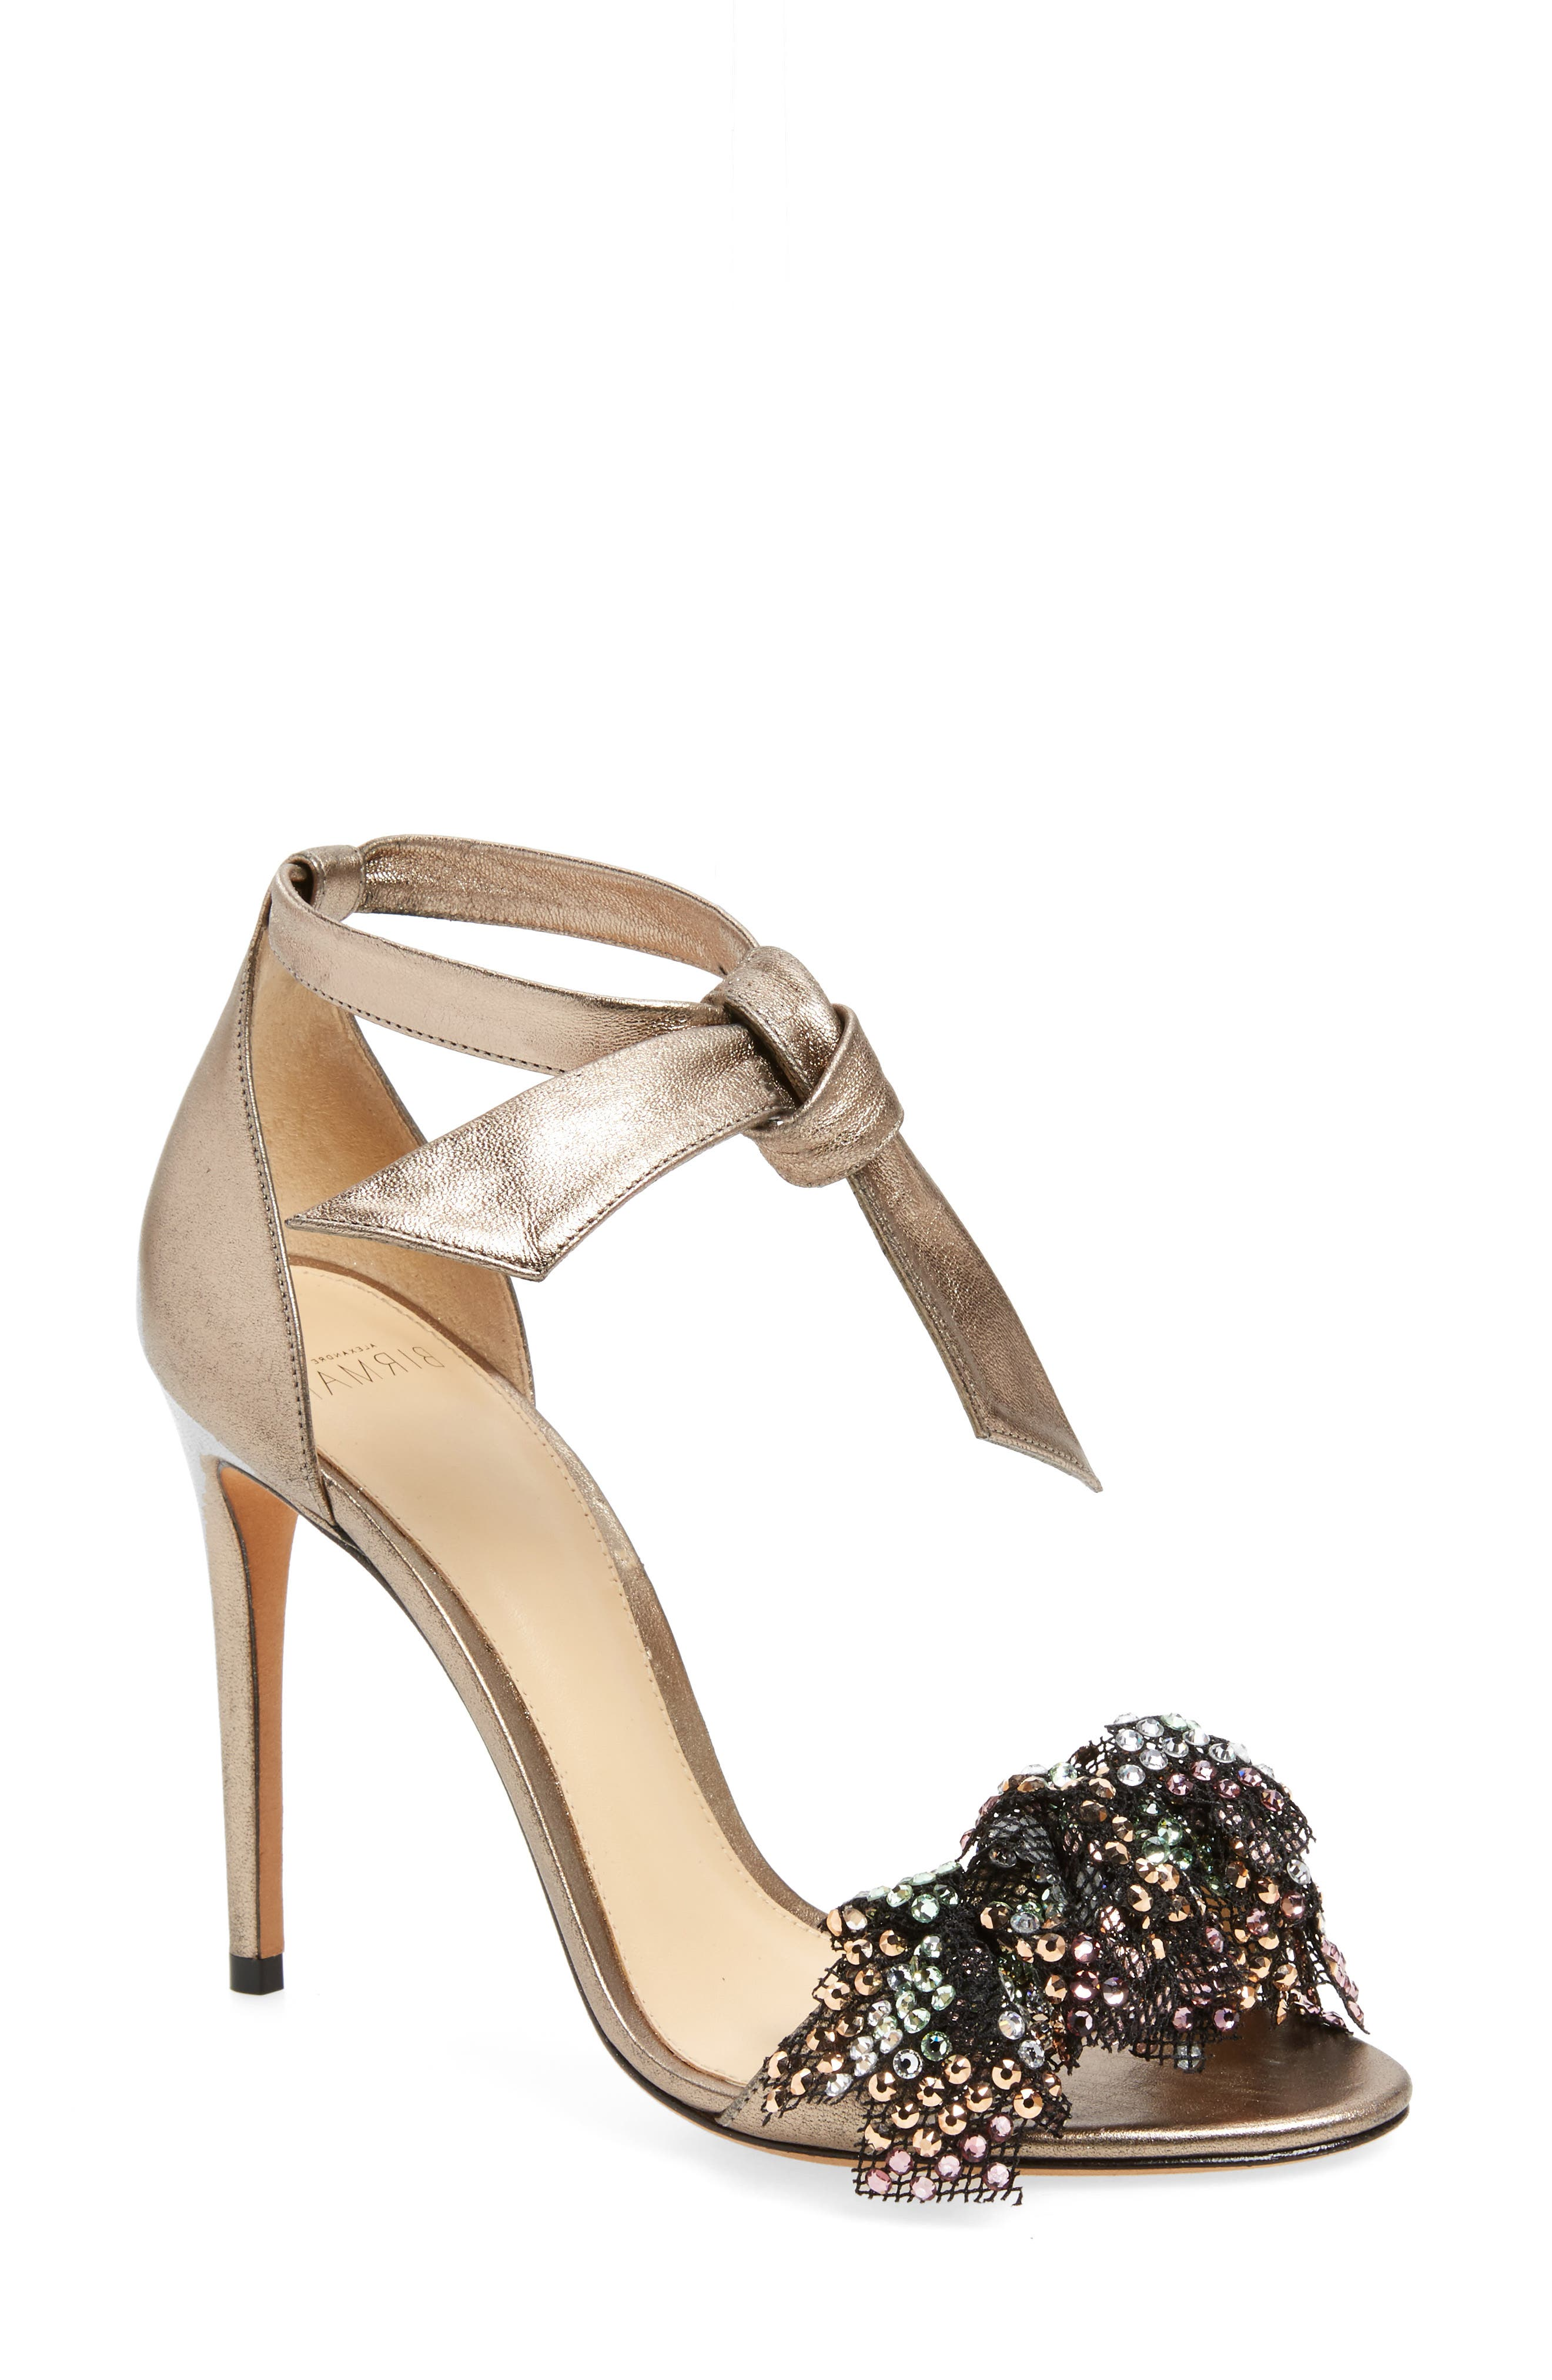 Alternate Image 1 Selected - Alexandre Birman Clarita Show Embellished Ankle Tie Sandal